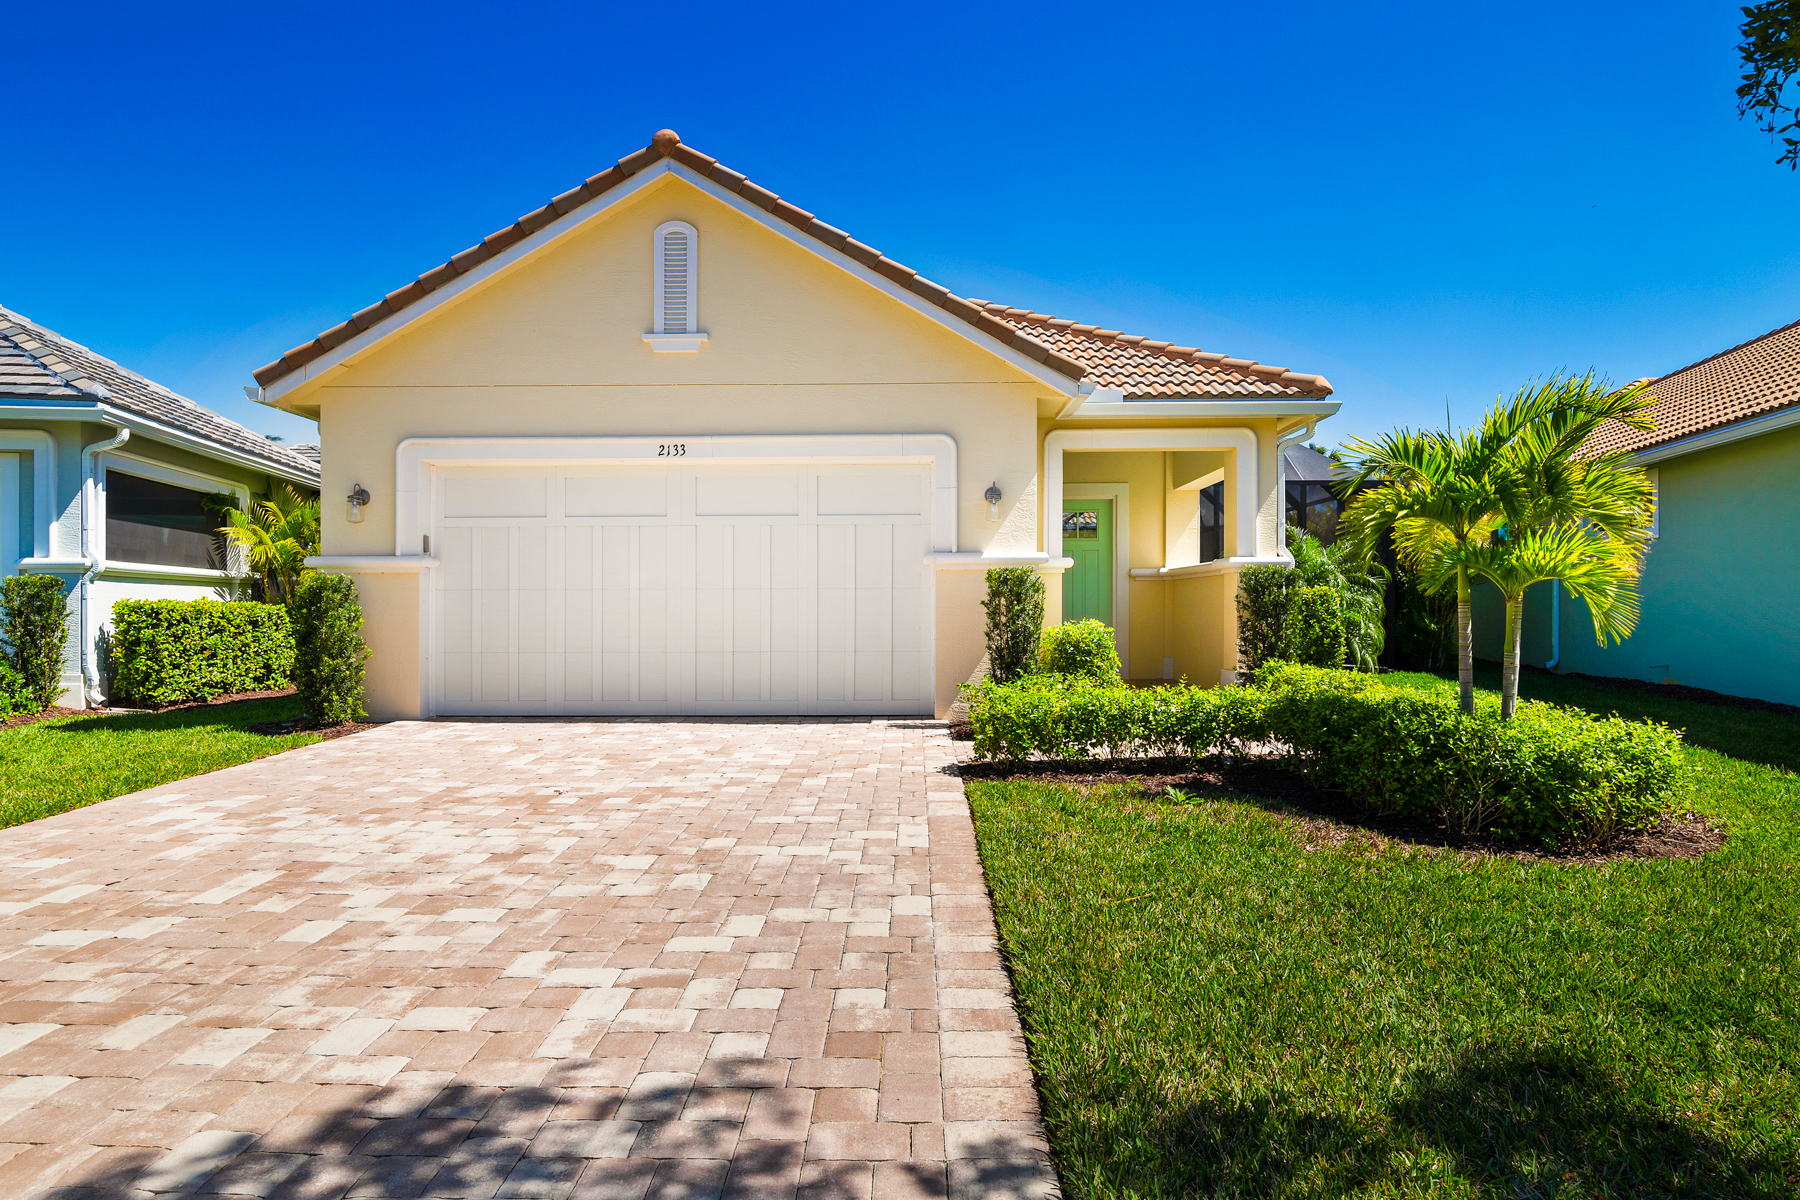 Single Family Homes for Sale at New Courtyard Home 2143 Falls Circle Vero Beach, Florida 32967 United States